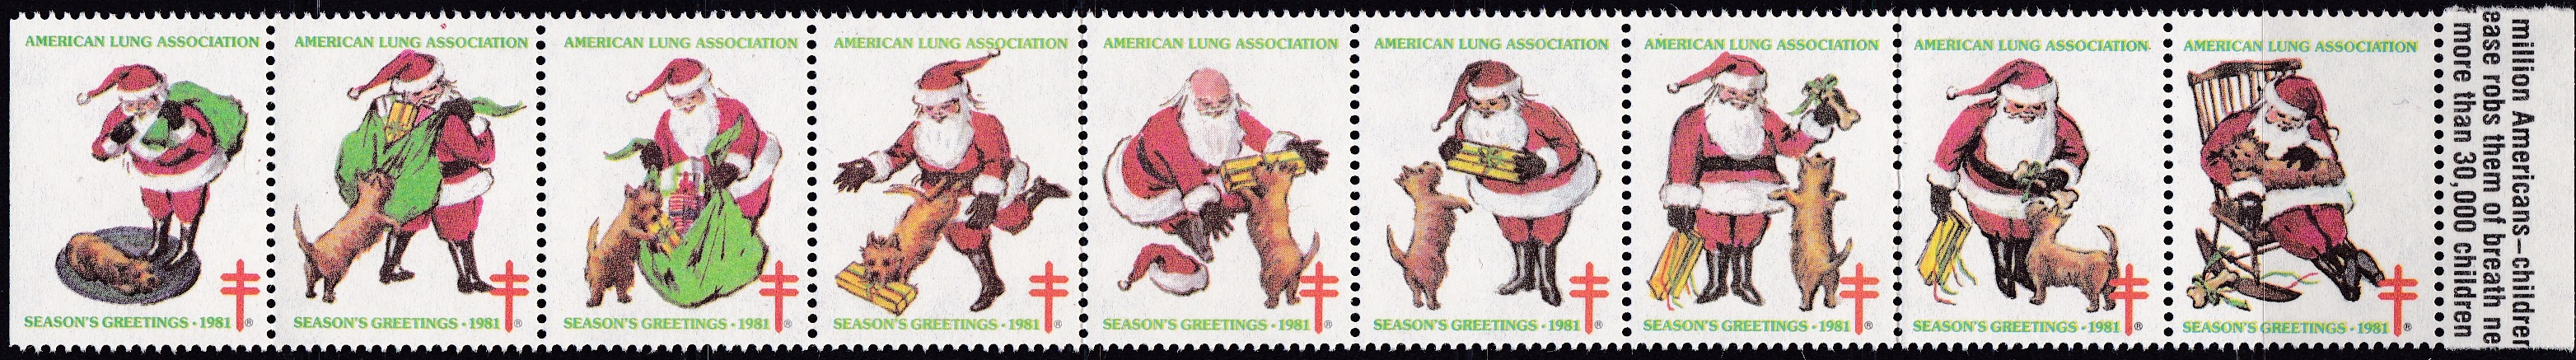 1981 Santa & Dog without gift tags, Design Experiment